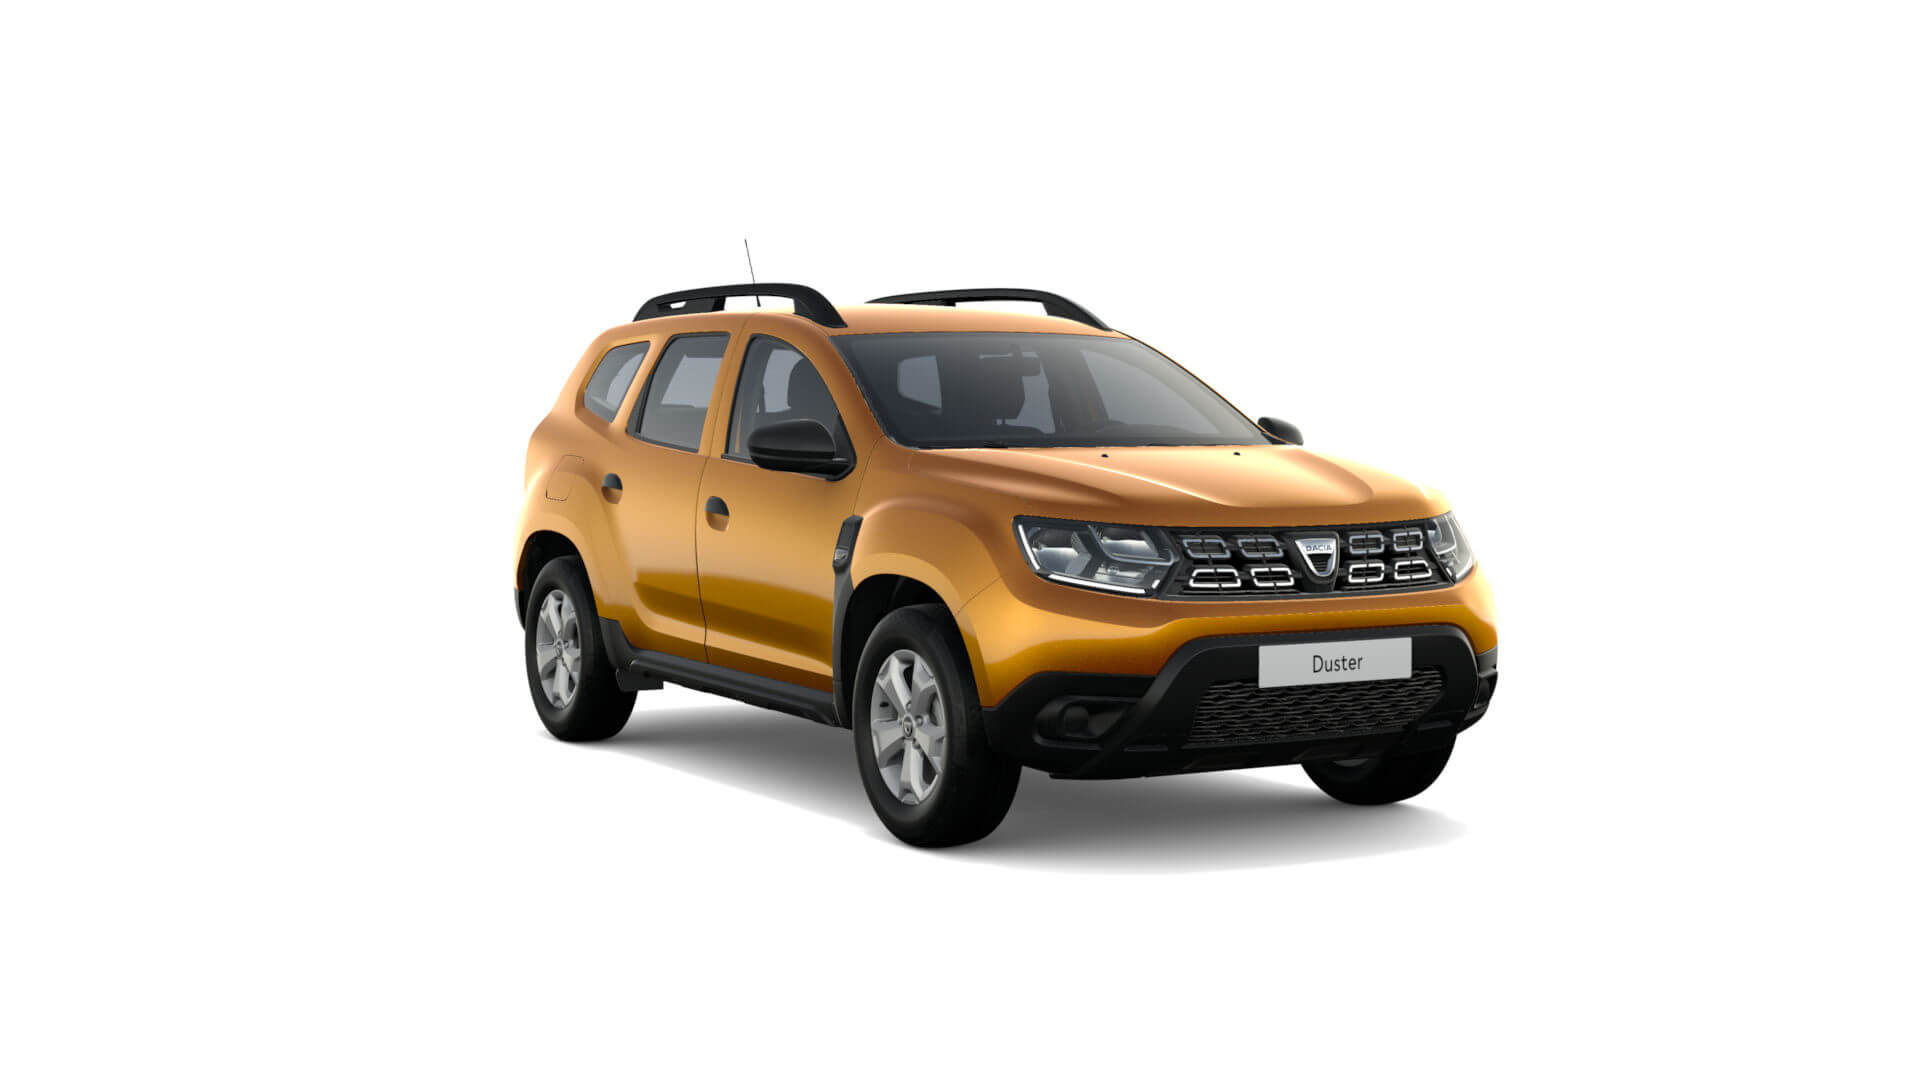 Automodell orange - Dacia Duster - Renault Ahrens Hannover